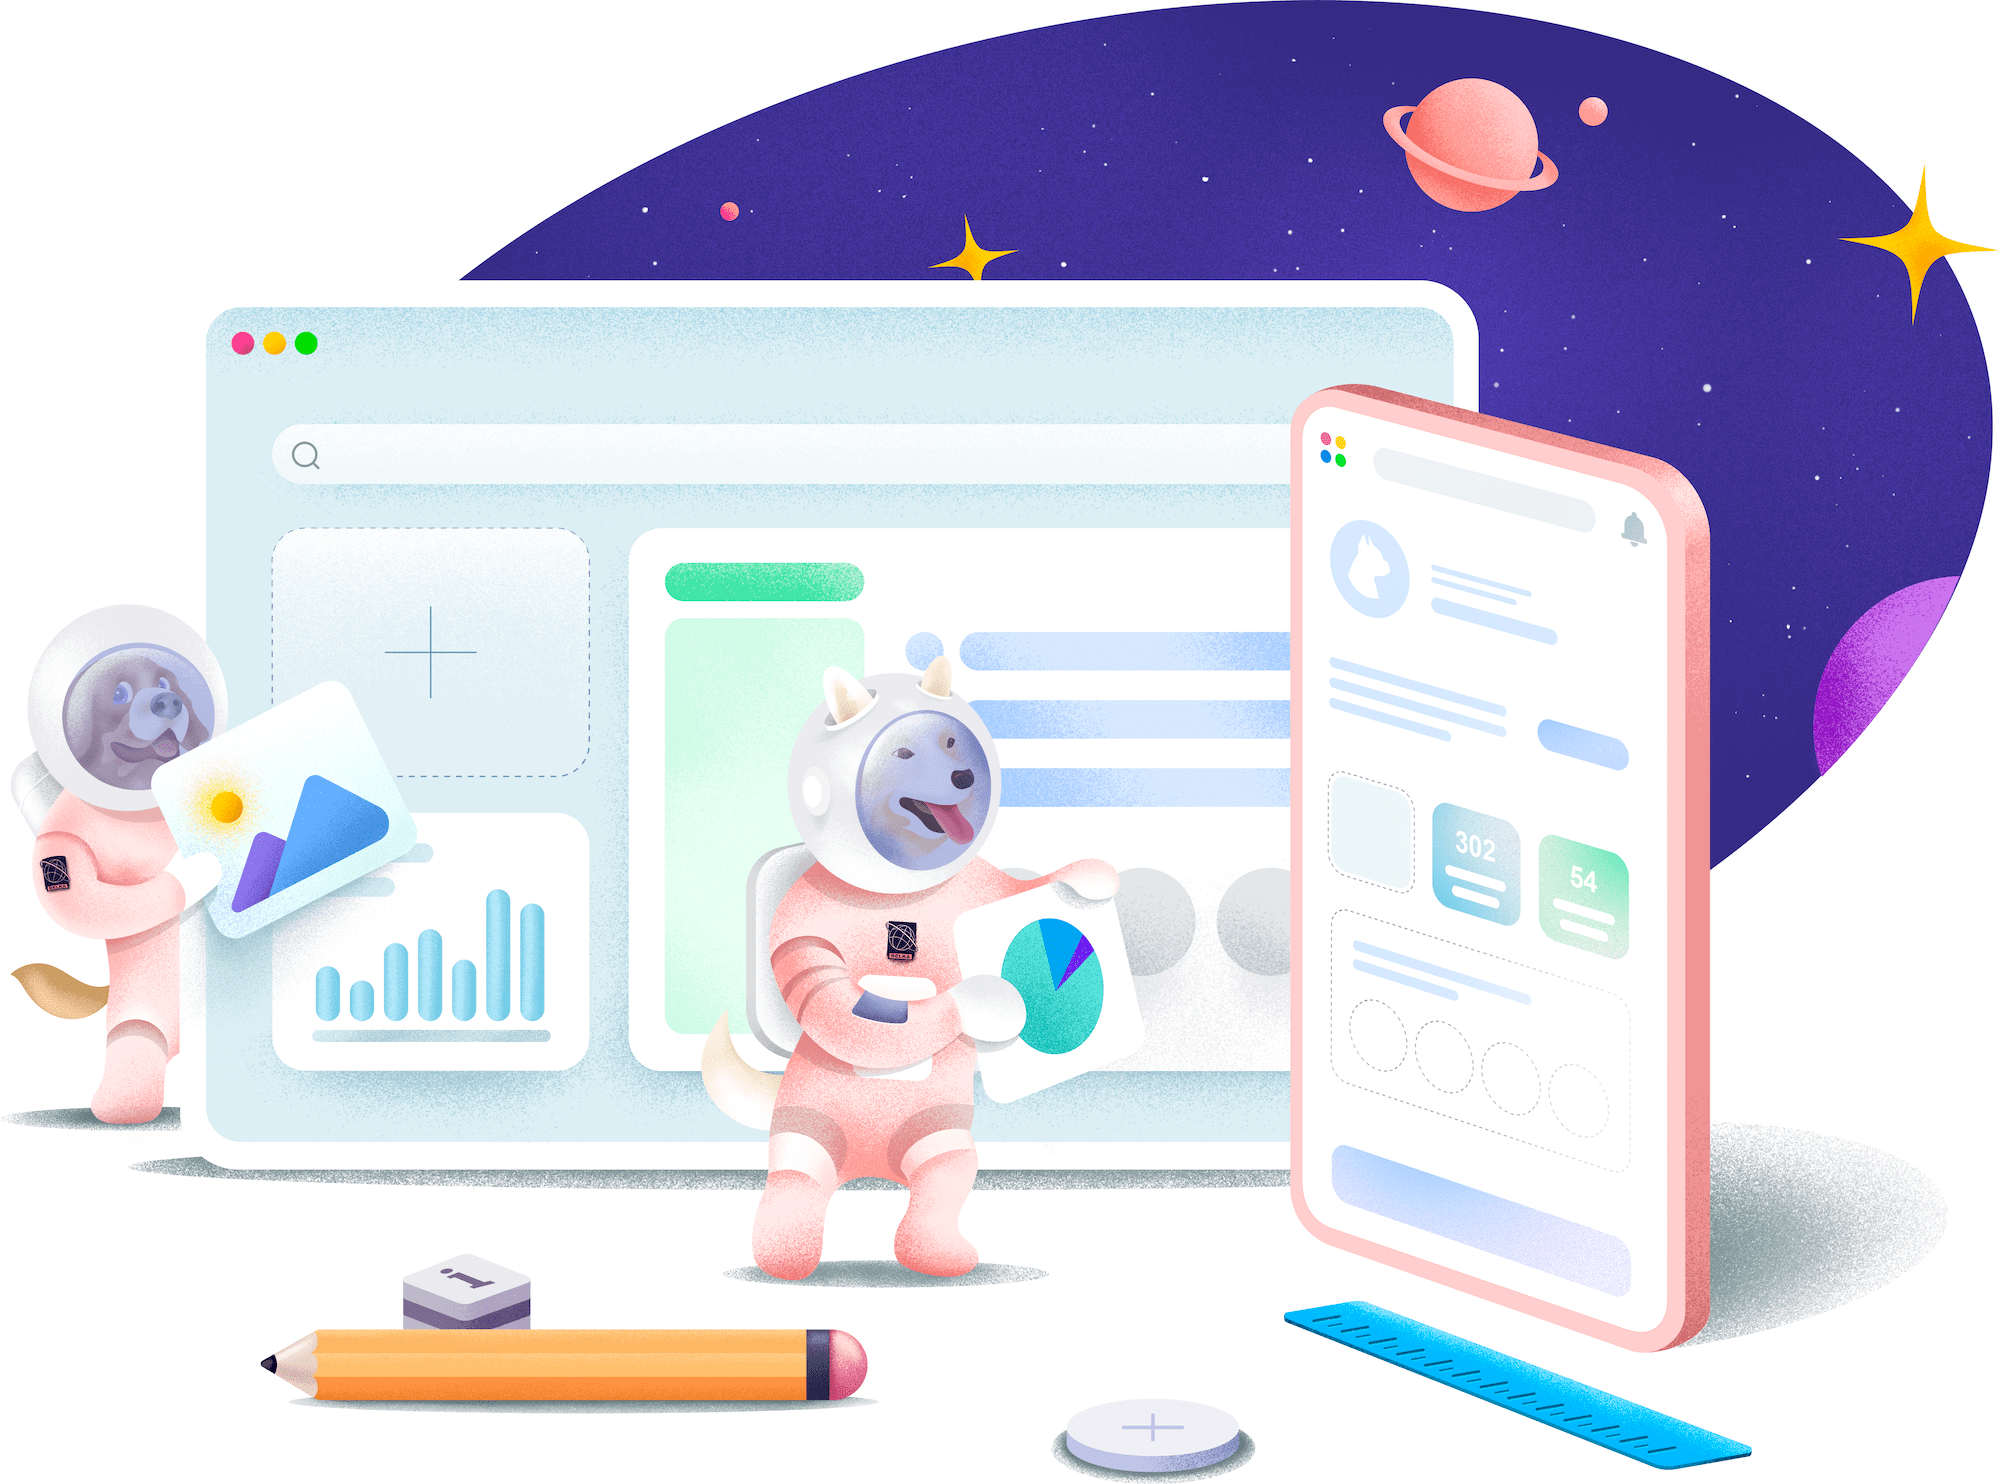 A group of space dogs building apps and websites